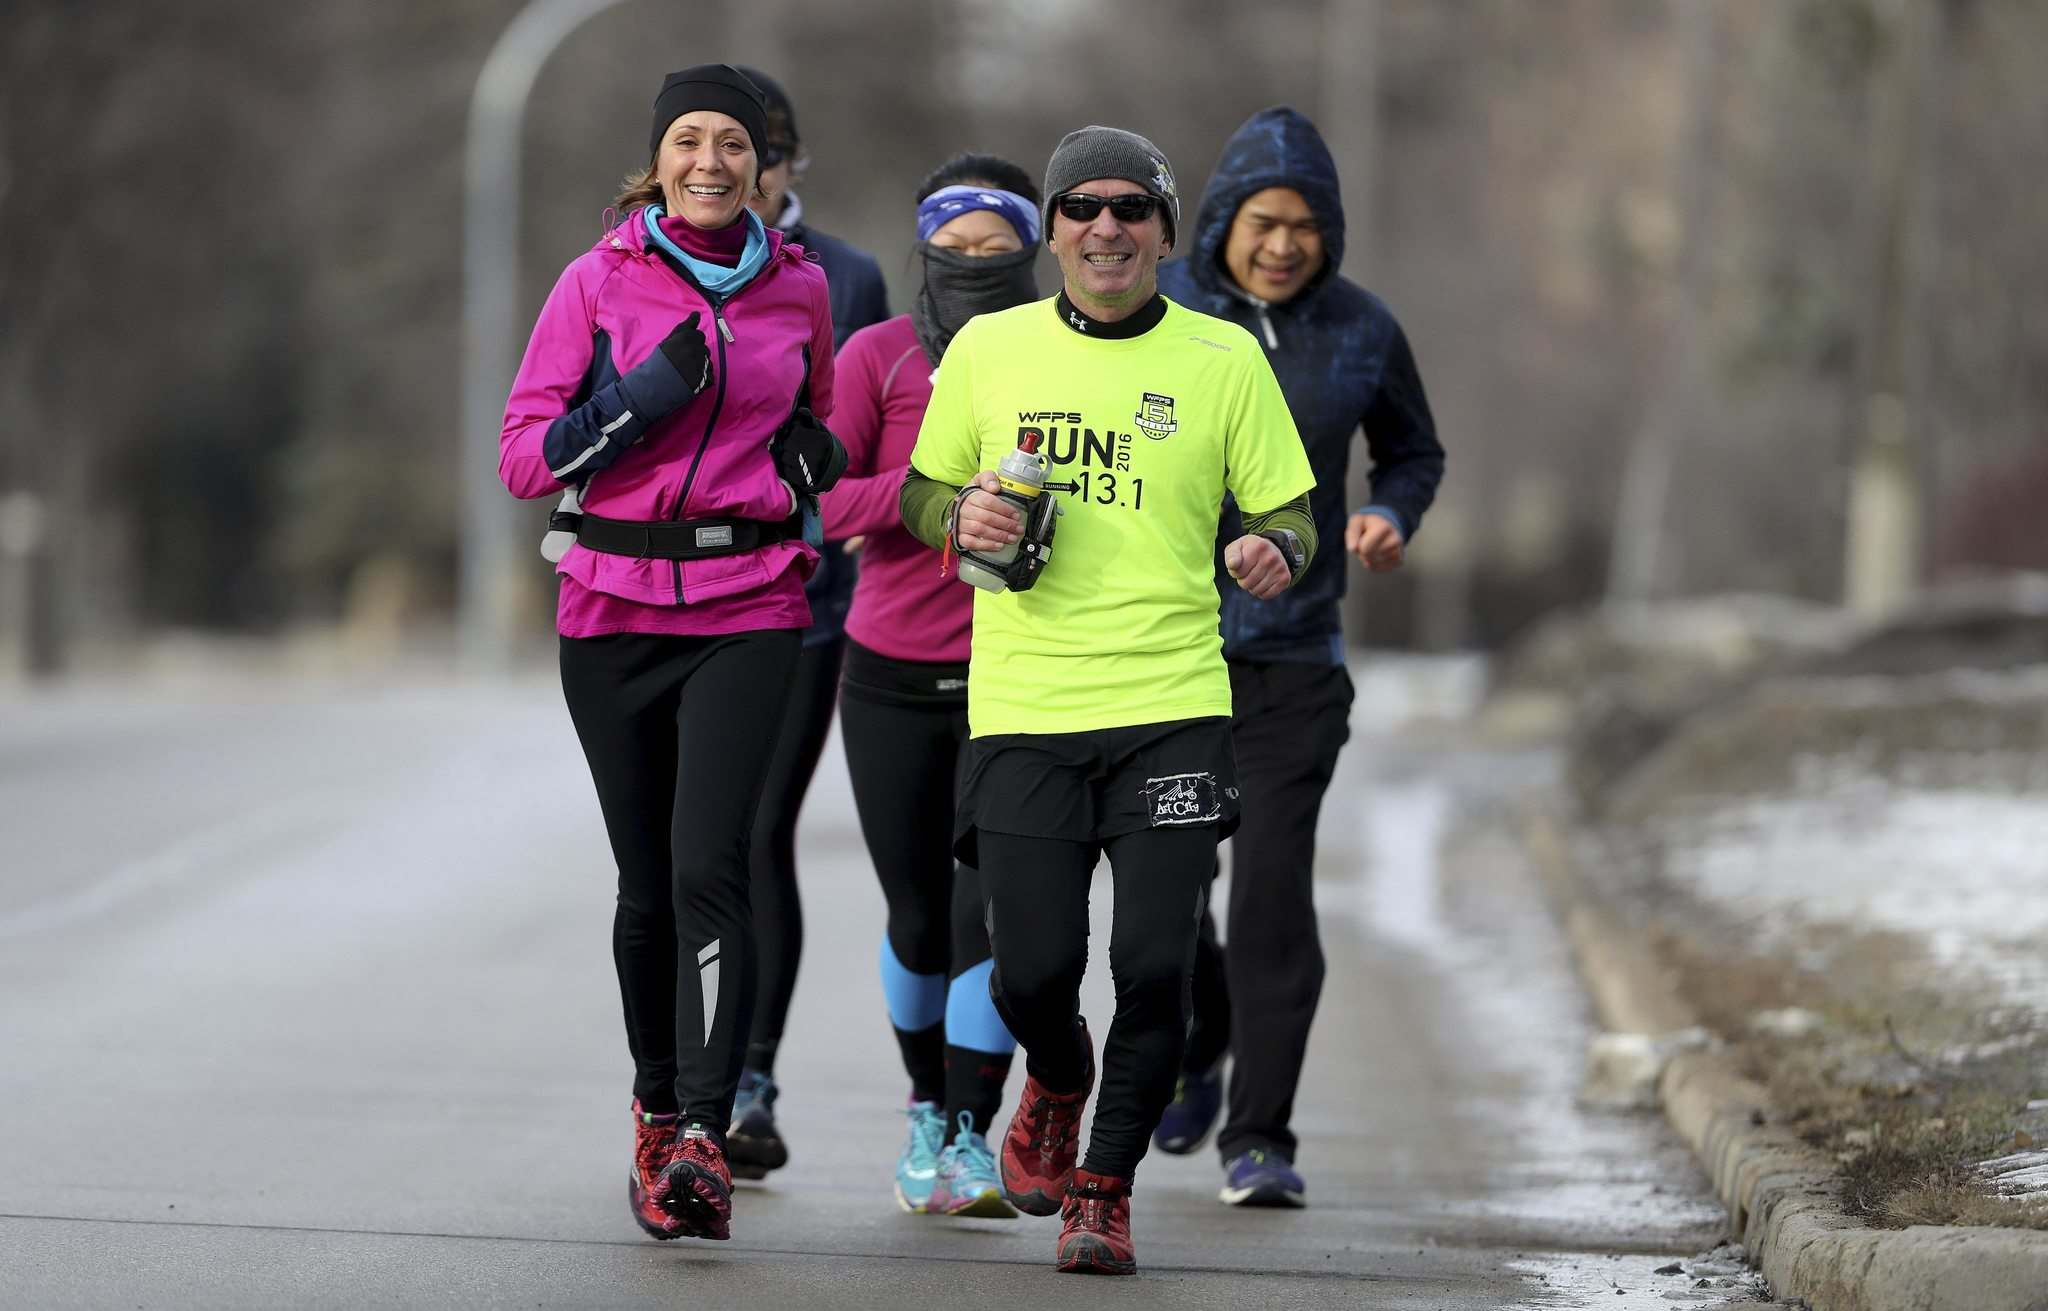 TREVOR HAGAN / WINNIPEG FREE PRESS</p><p>Retired teacher Mike Bennett (centre) ran 58.341 kilometres Sunday to raise funds for Art City. There are still some donations left to tally, but at last count, the total was $5,000.</p></p>